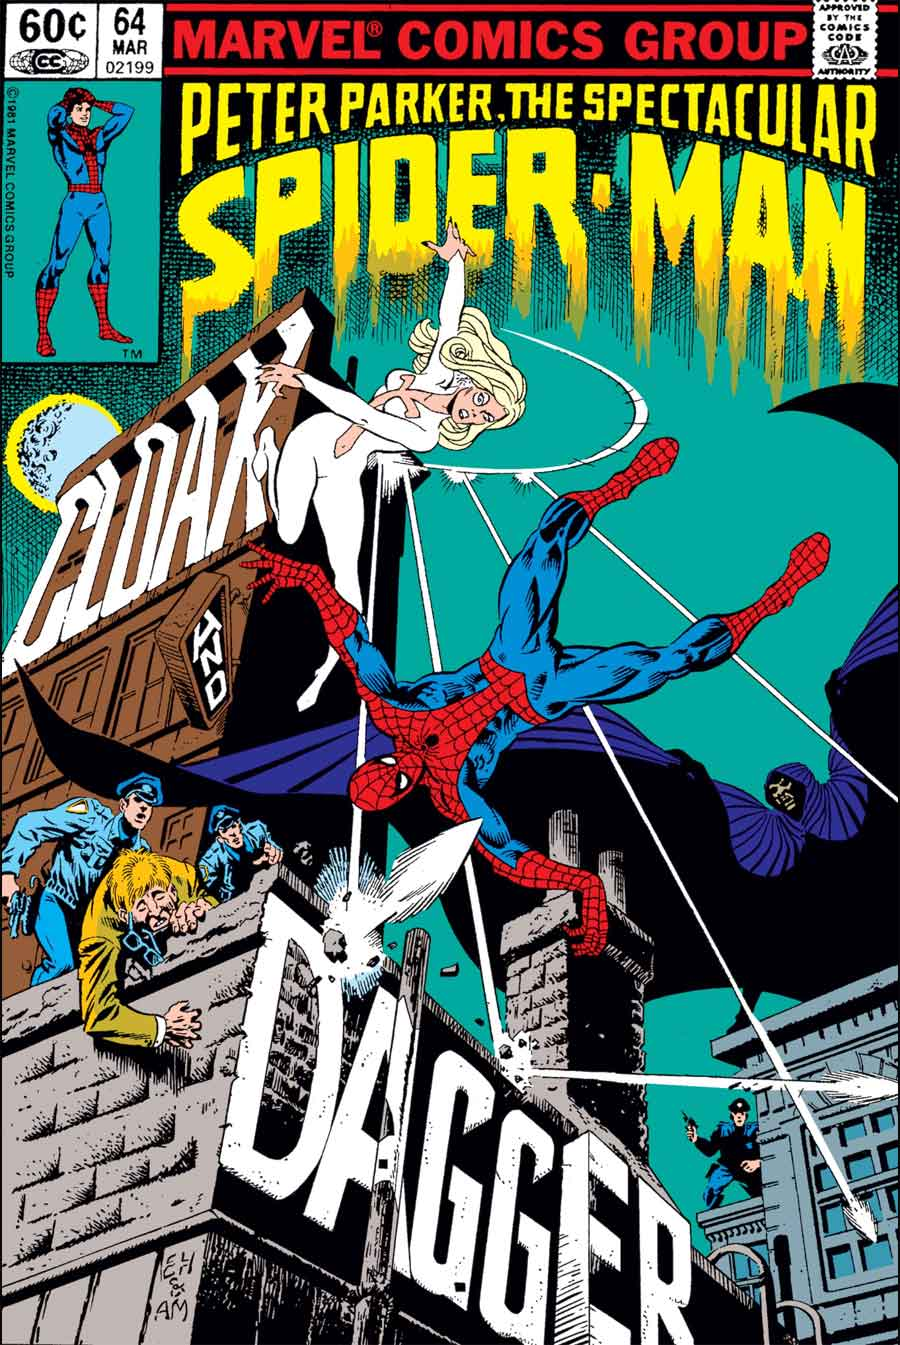 Peter Parker, the Spectacular Spider-Man #64 by Bill Mantlo and Ed Hannigan